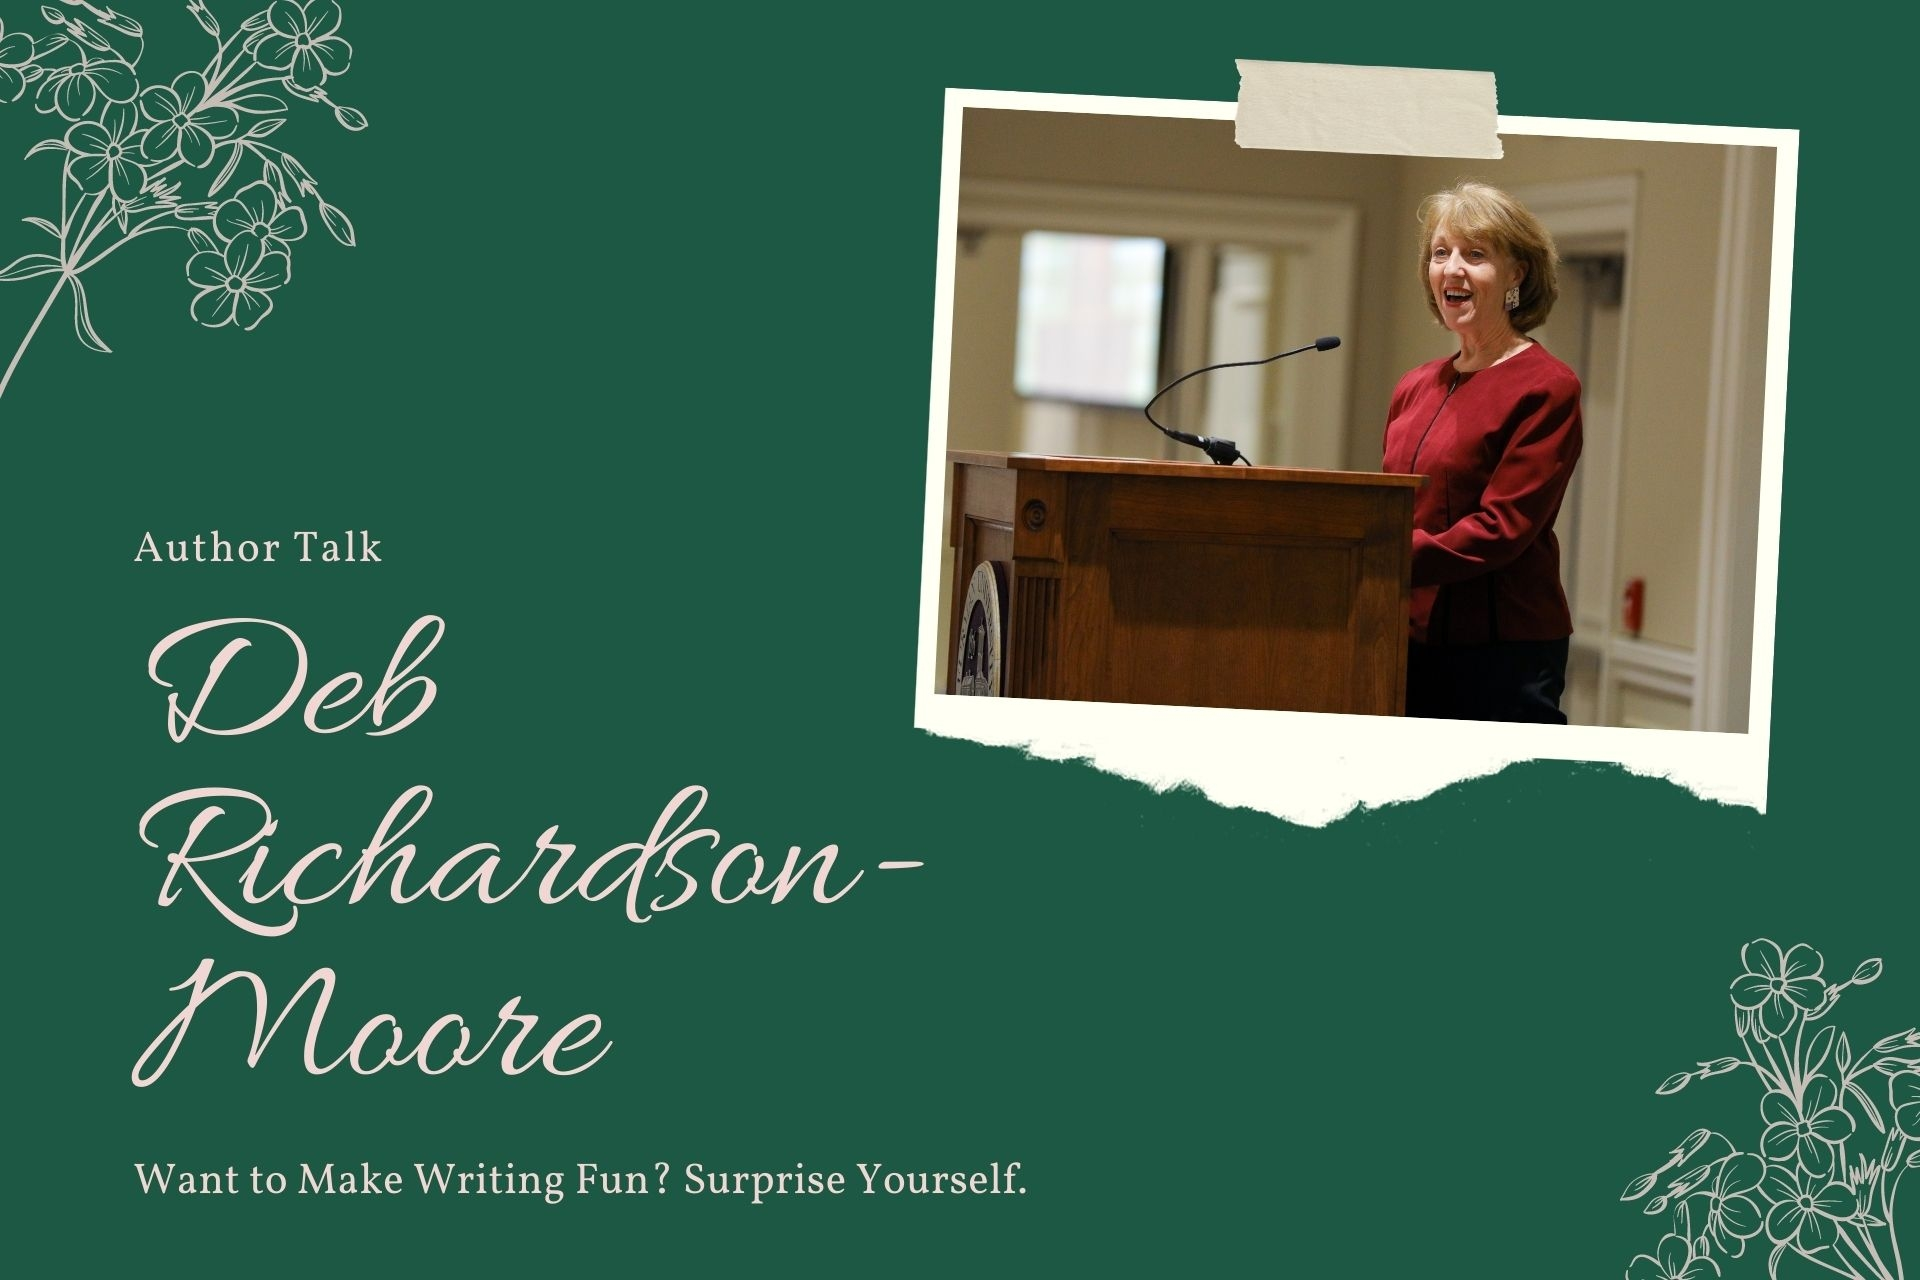 Deb Richardson-Moore: Want to Make Writing Fun? Surprise Yourself.